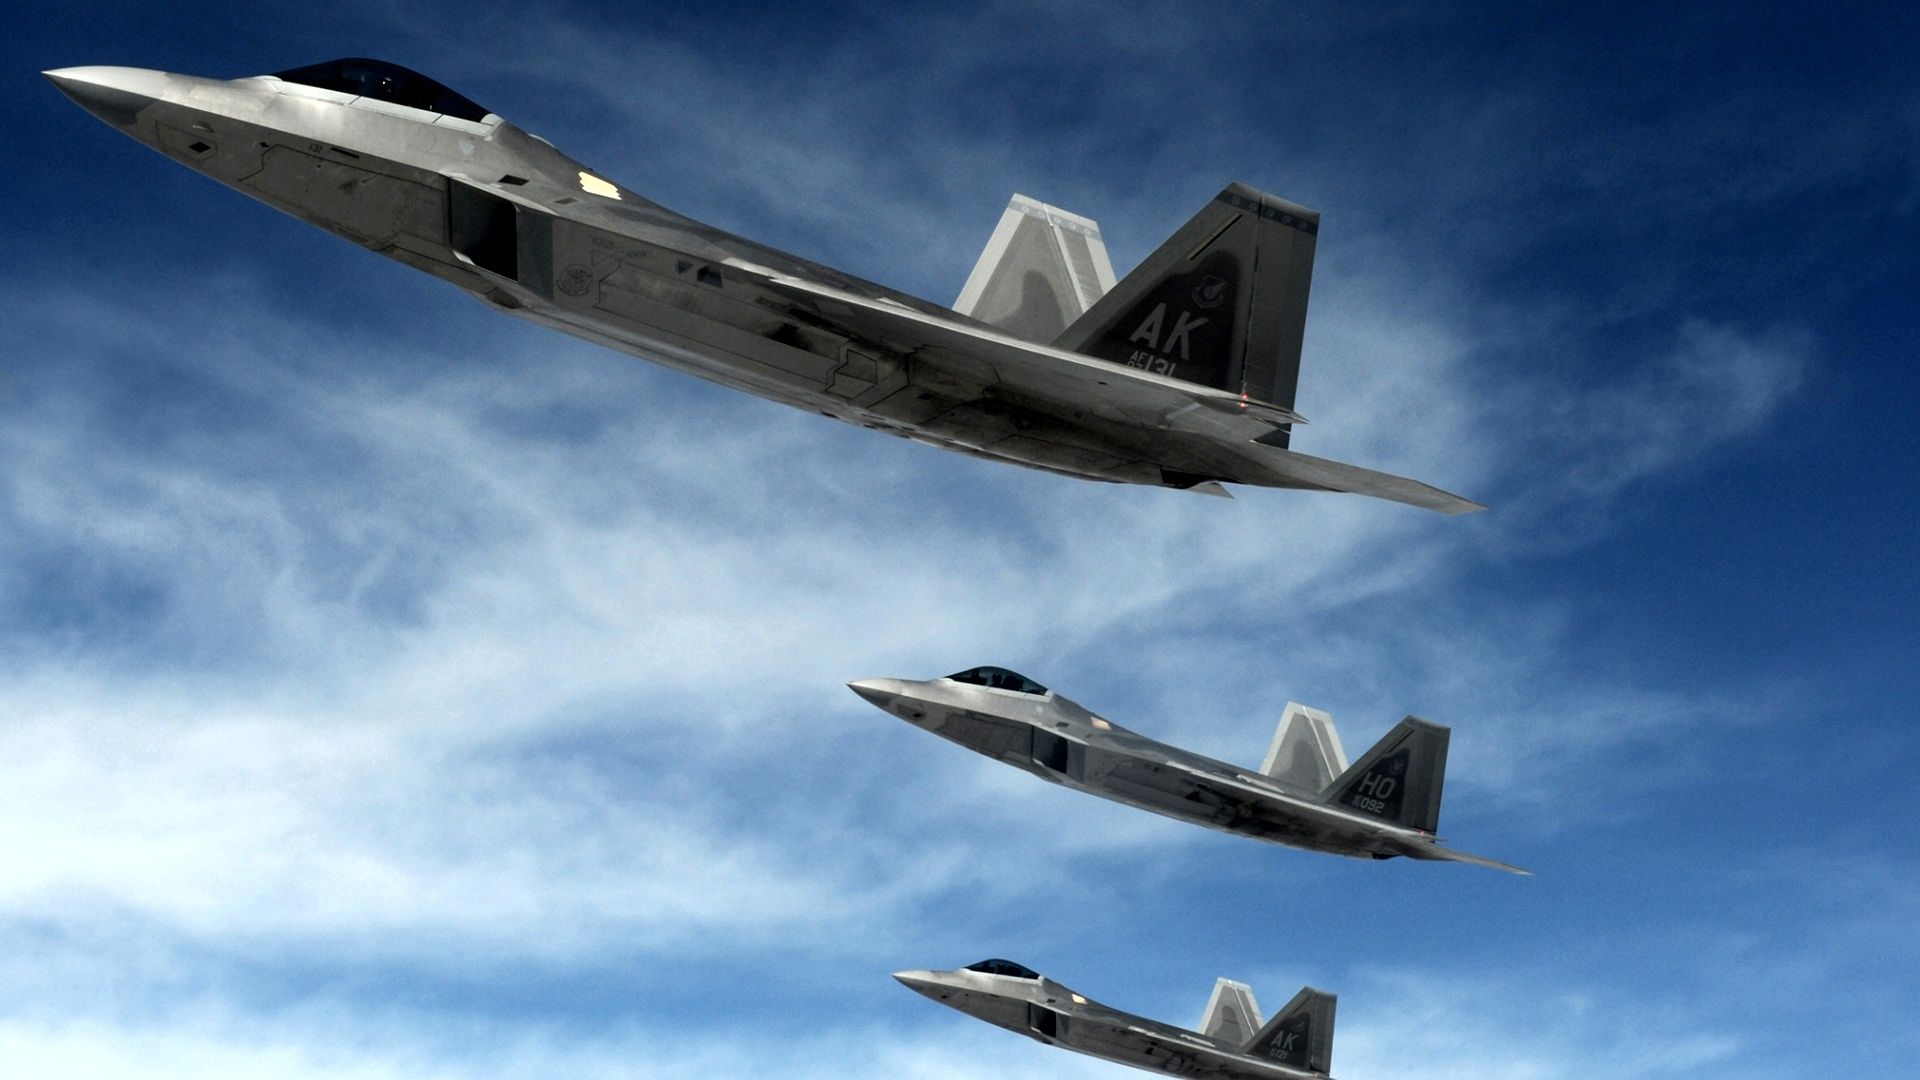 F22 Wallpaper 1080p \x3cb\x3ef 22\x3cb\x3e raptors stealth fighters 1920x1080